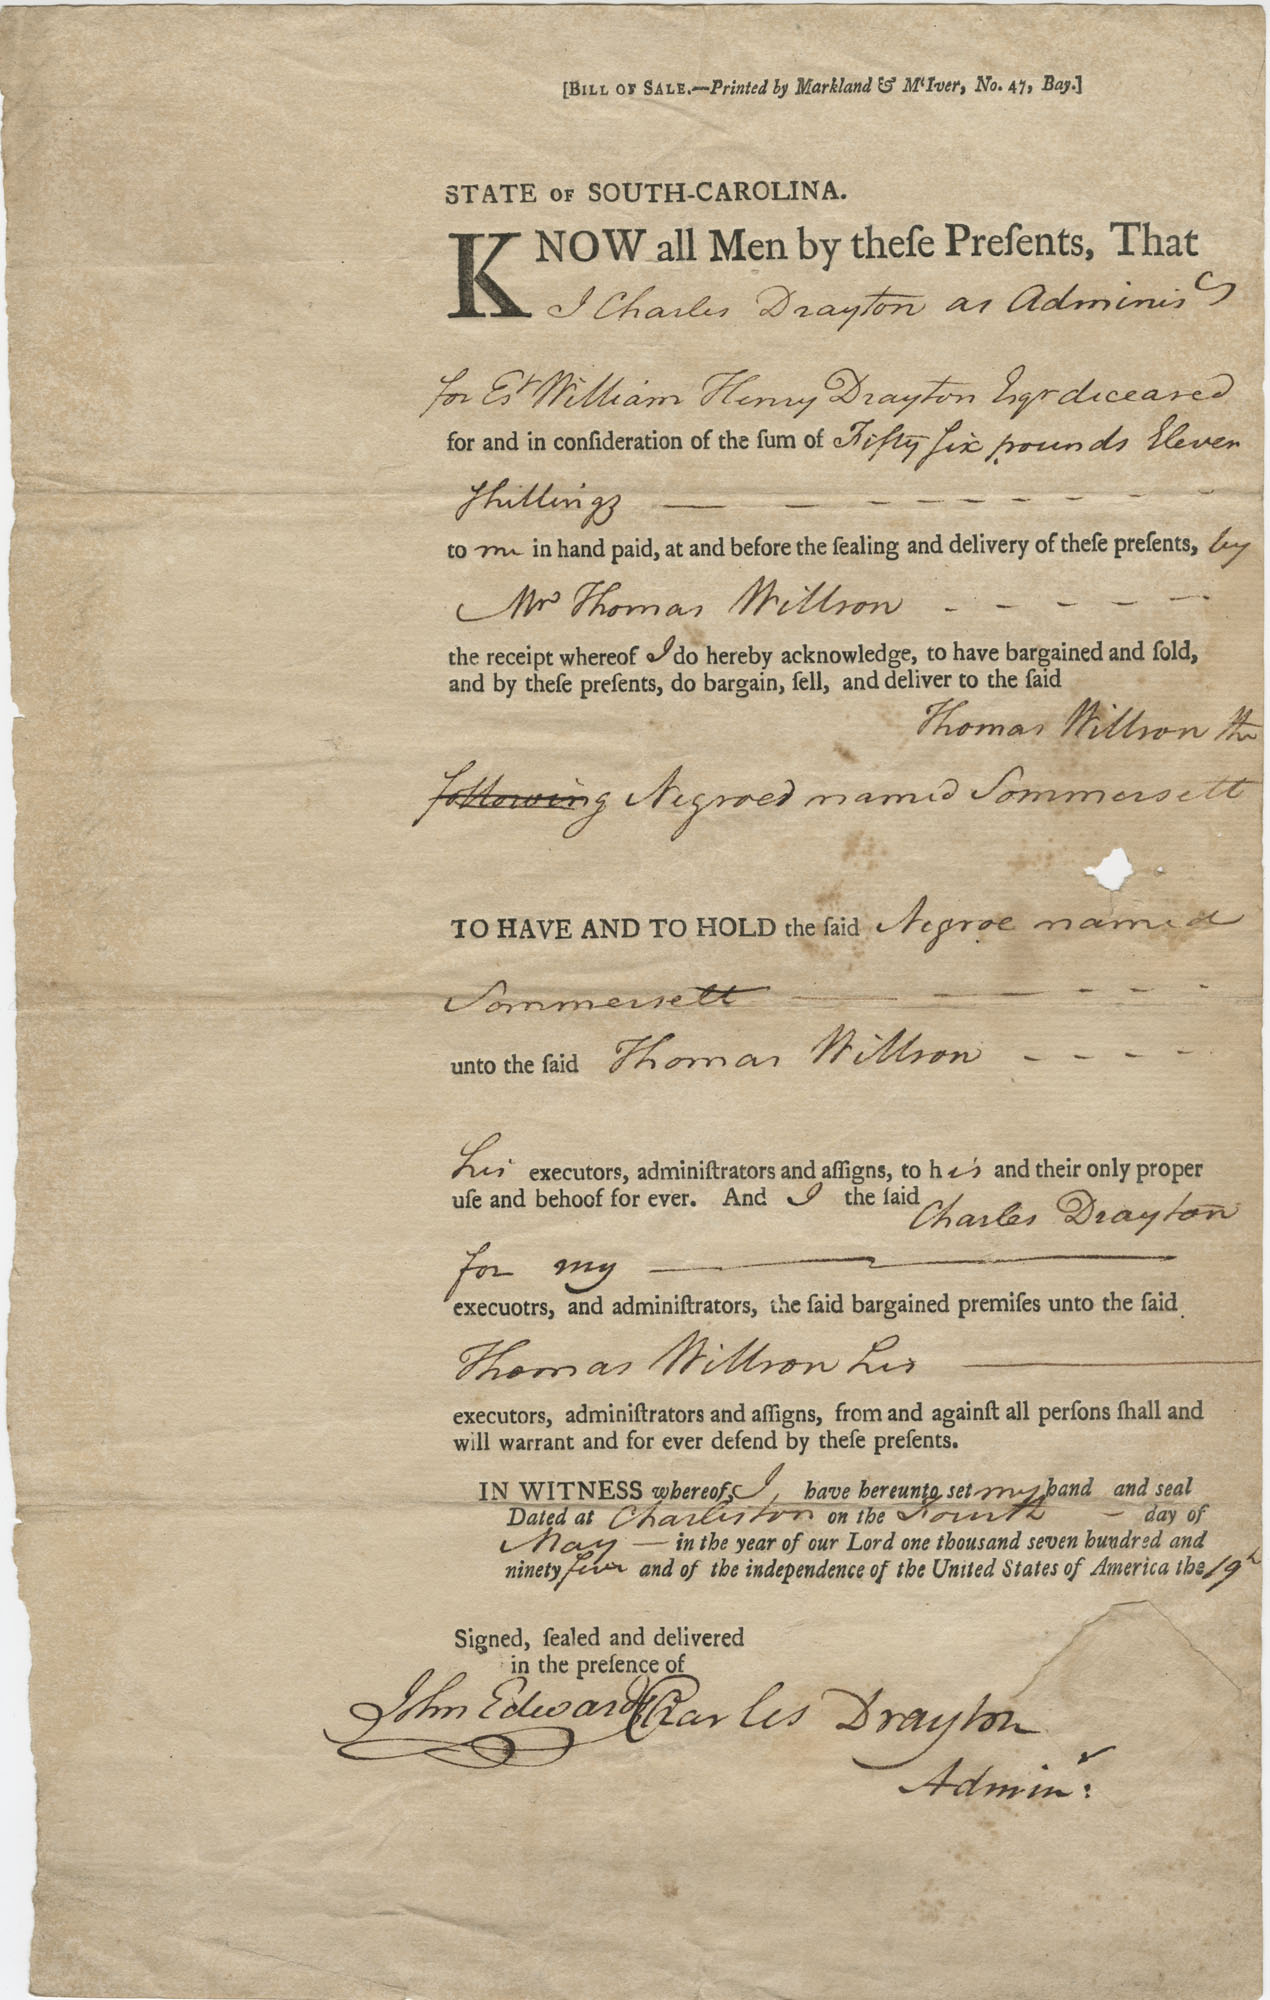 Bill of Sale to Thomas Willson for the purchase of a slave named Sommersett, May 4, 1795